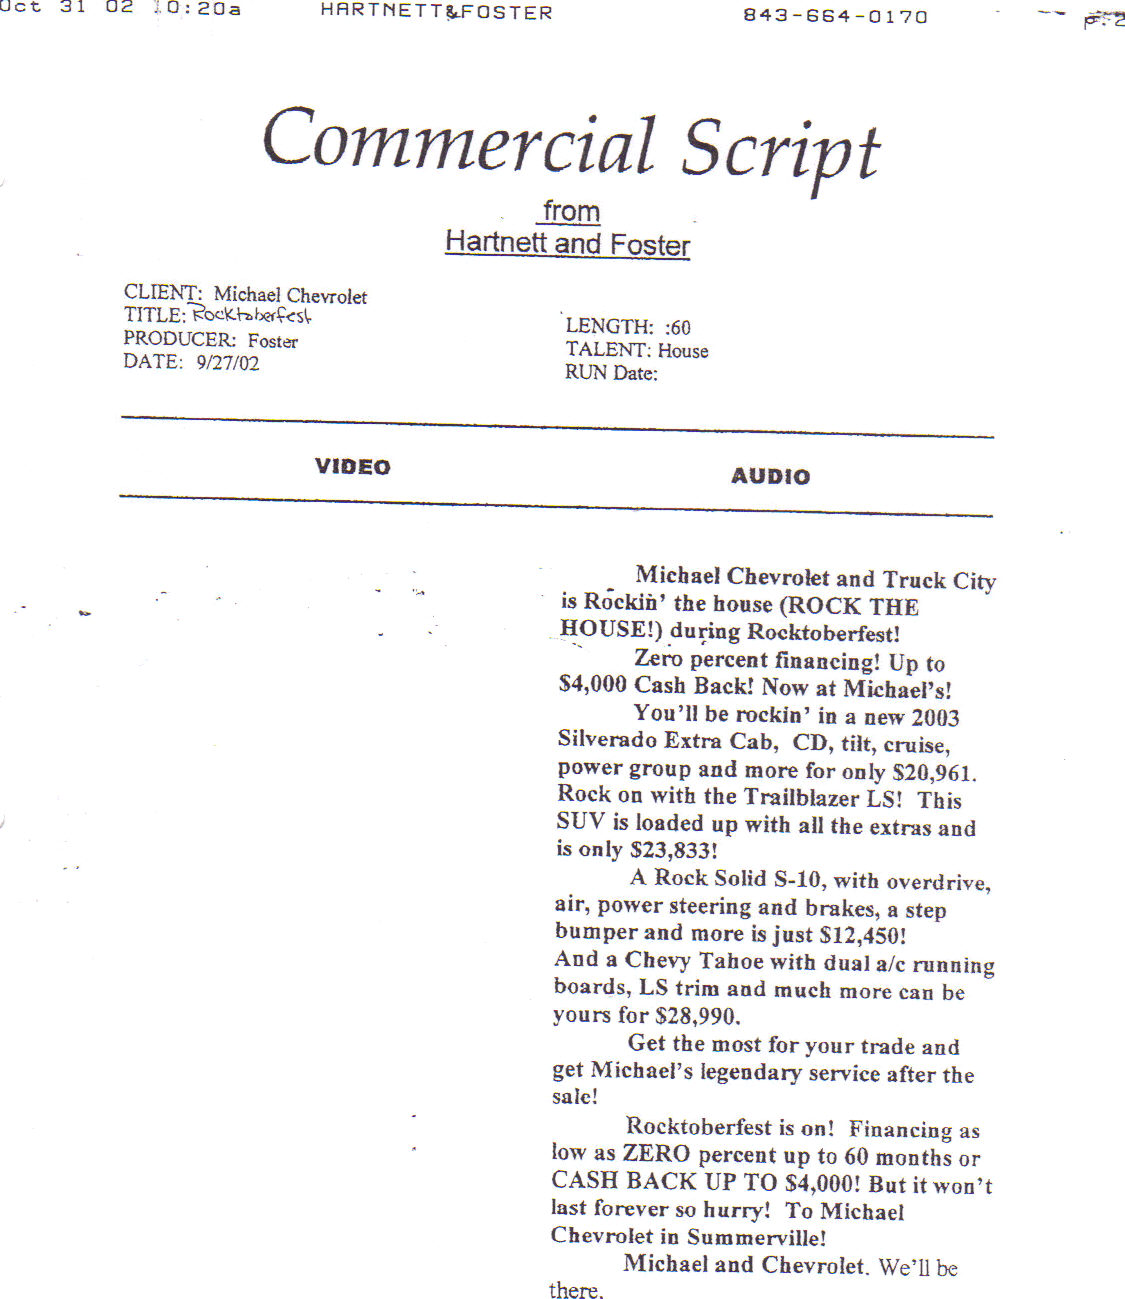 tv commercial script template - untitled document